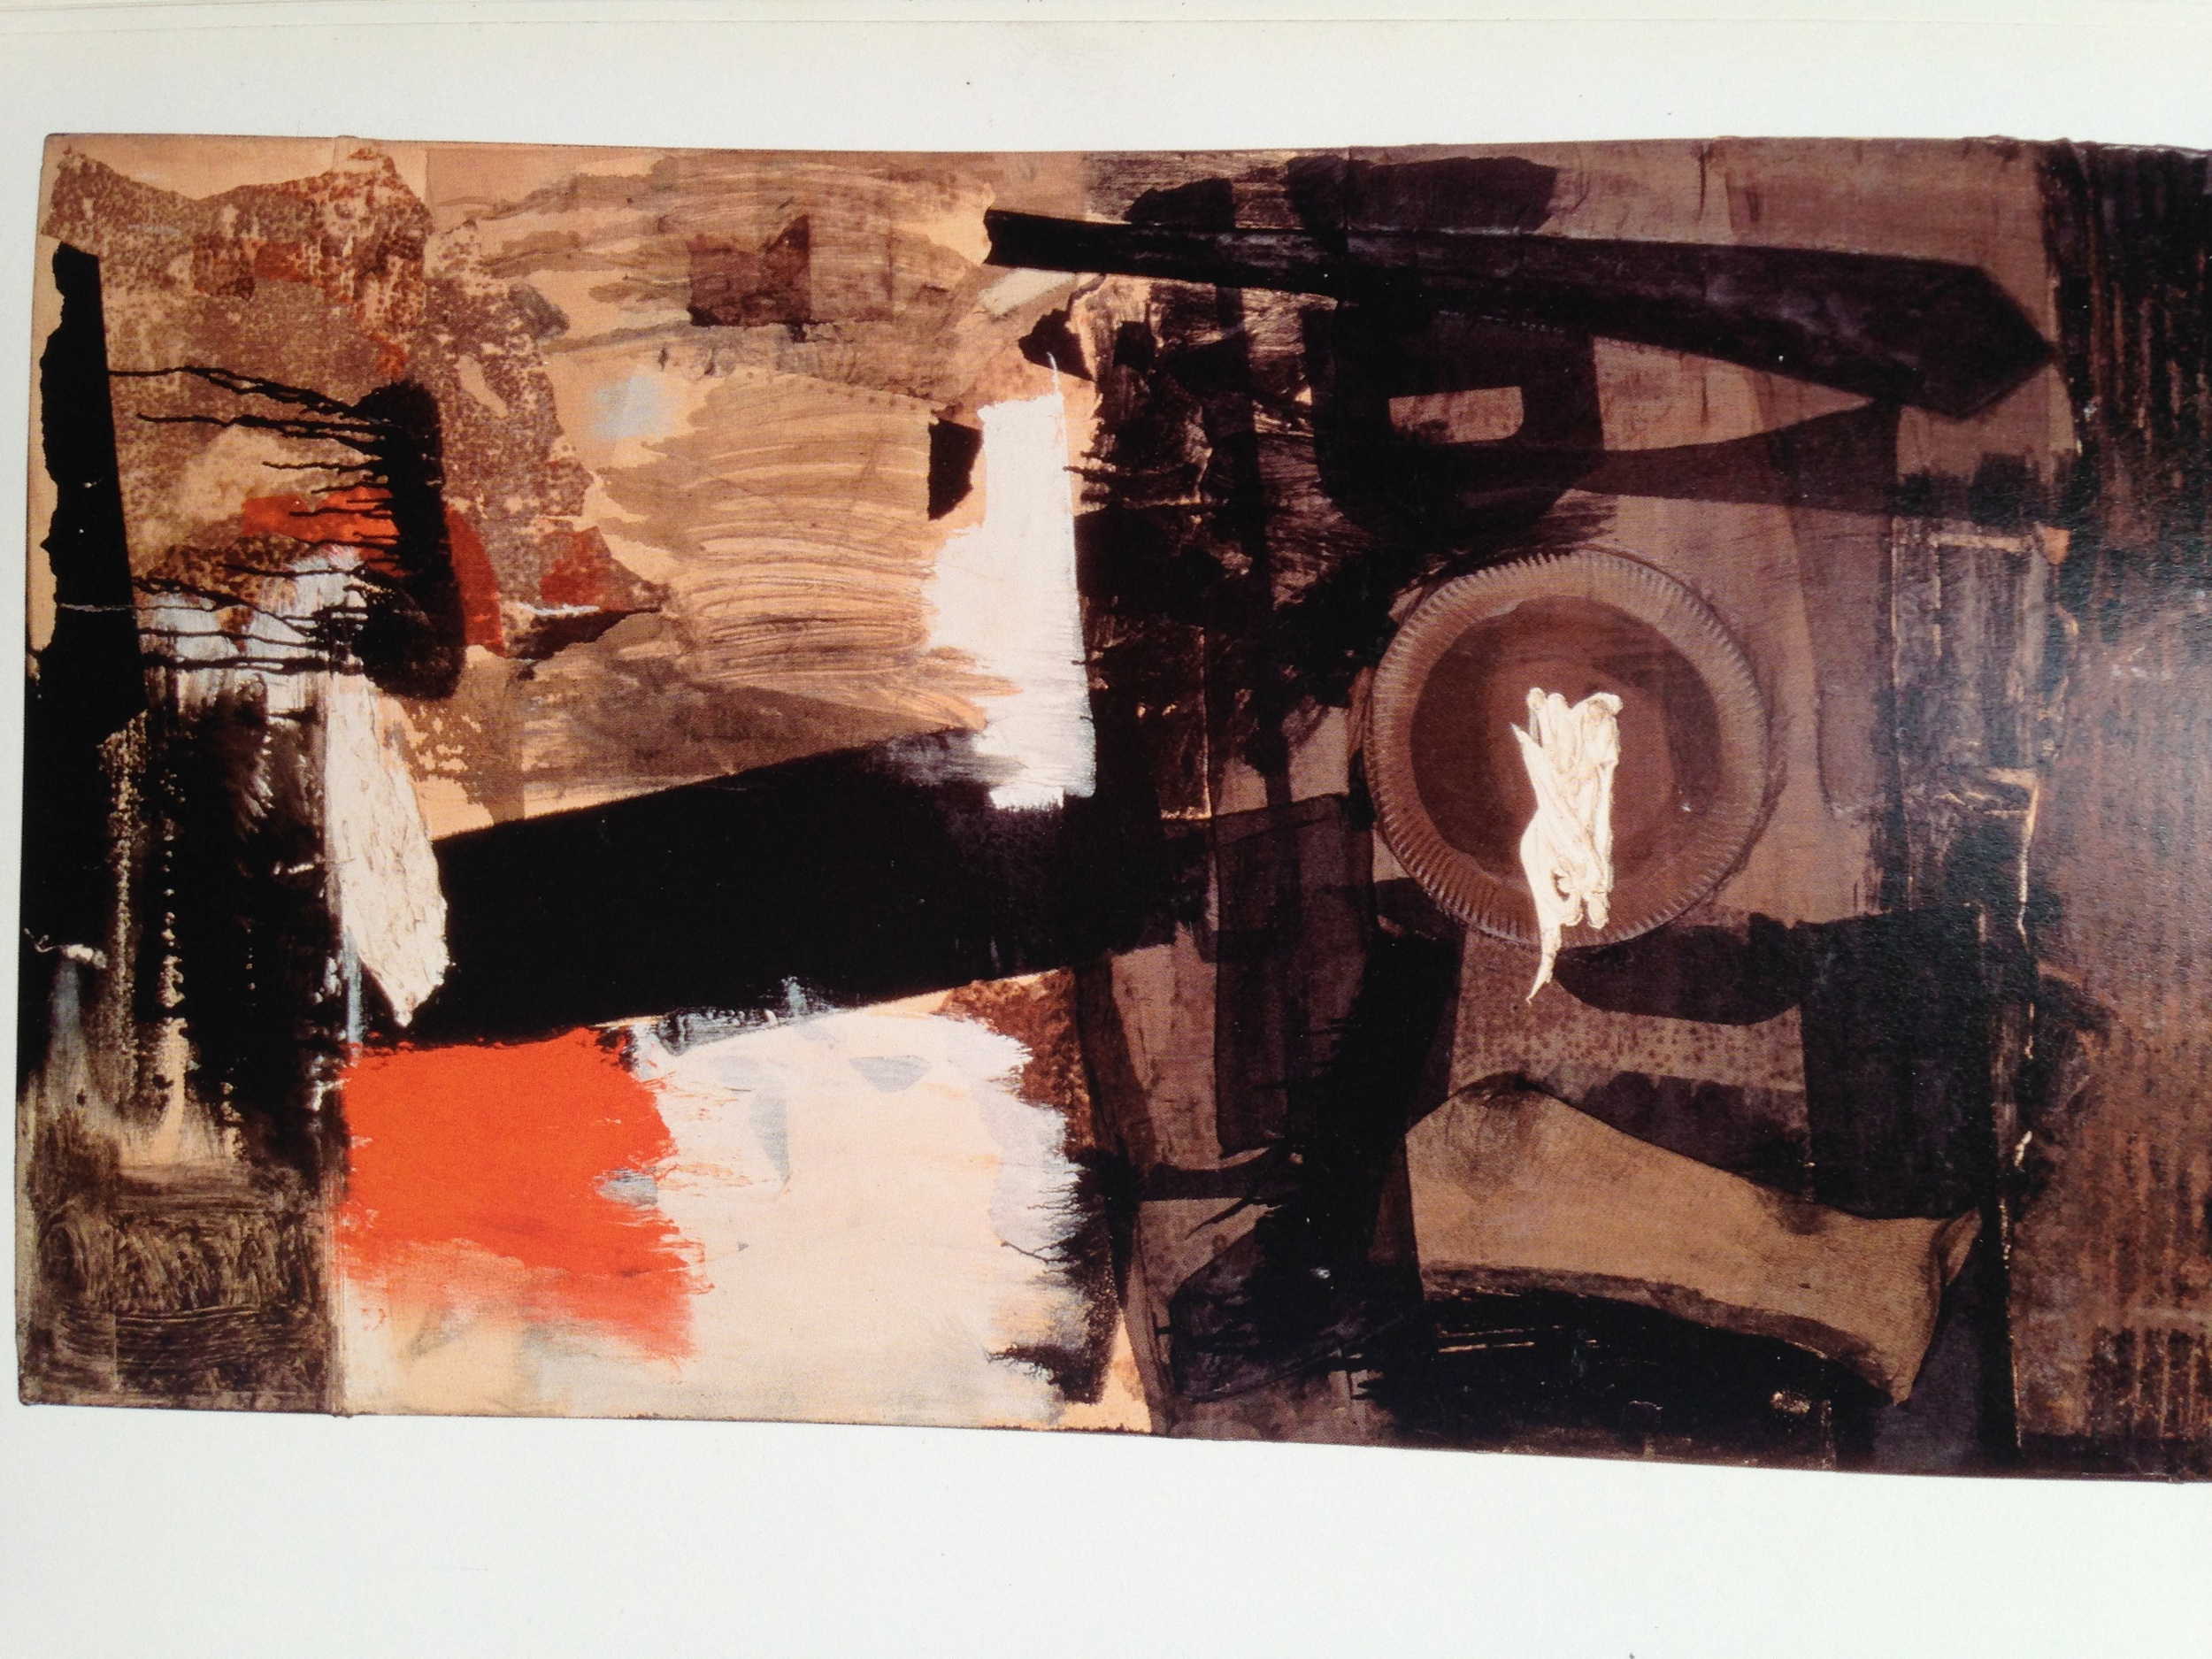 This is a photo of one of Rauschenberg's many artworks. He was hugely prolific and experimental with his work. I think he was somewhat of a genius! I'm a fan, that's for sure...